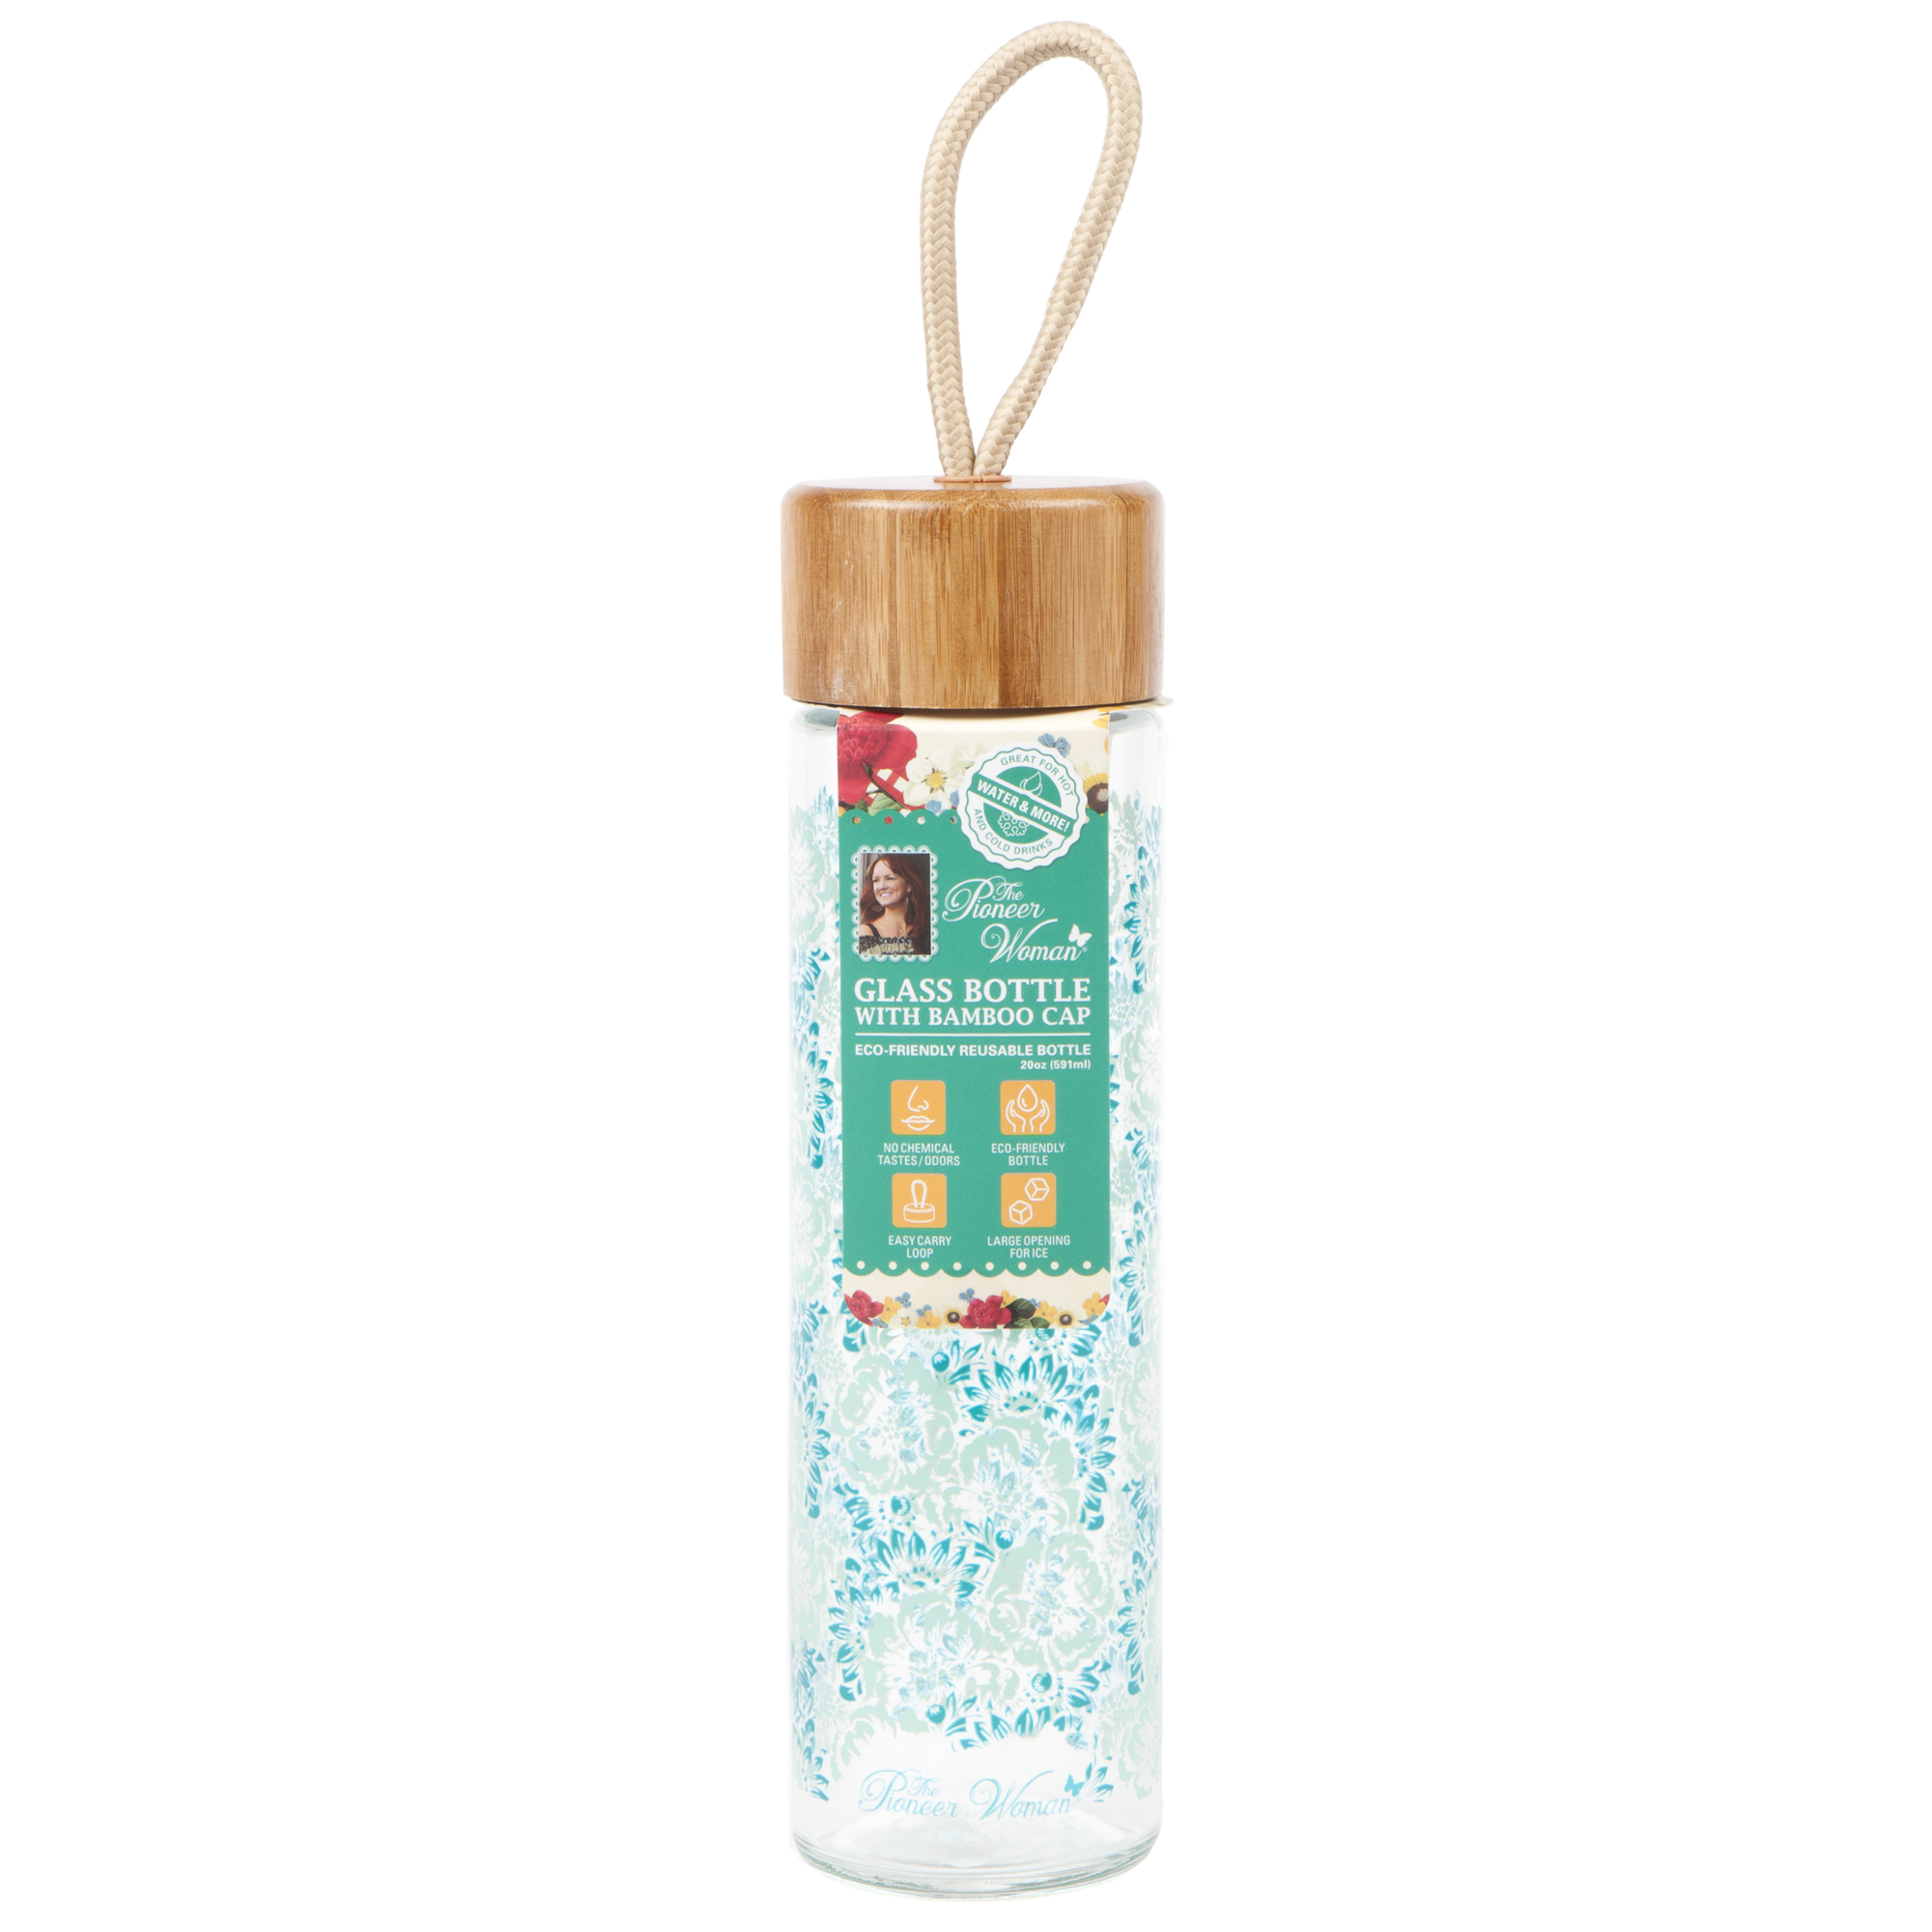 The Pioneer Woman 20 Ounce Teal Floral Print Glass Water Bottle with Bamboo  Cap